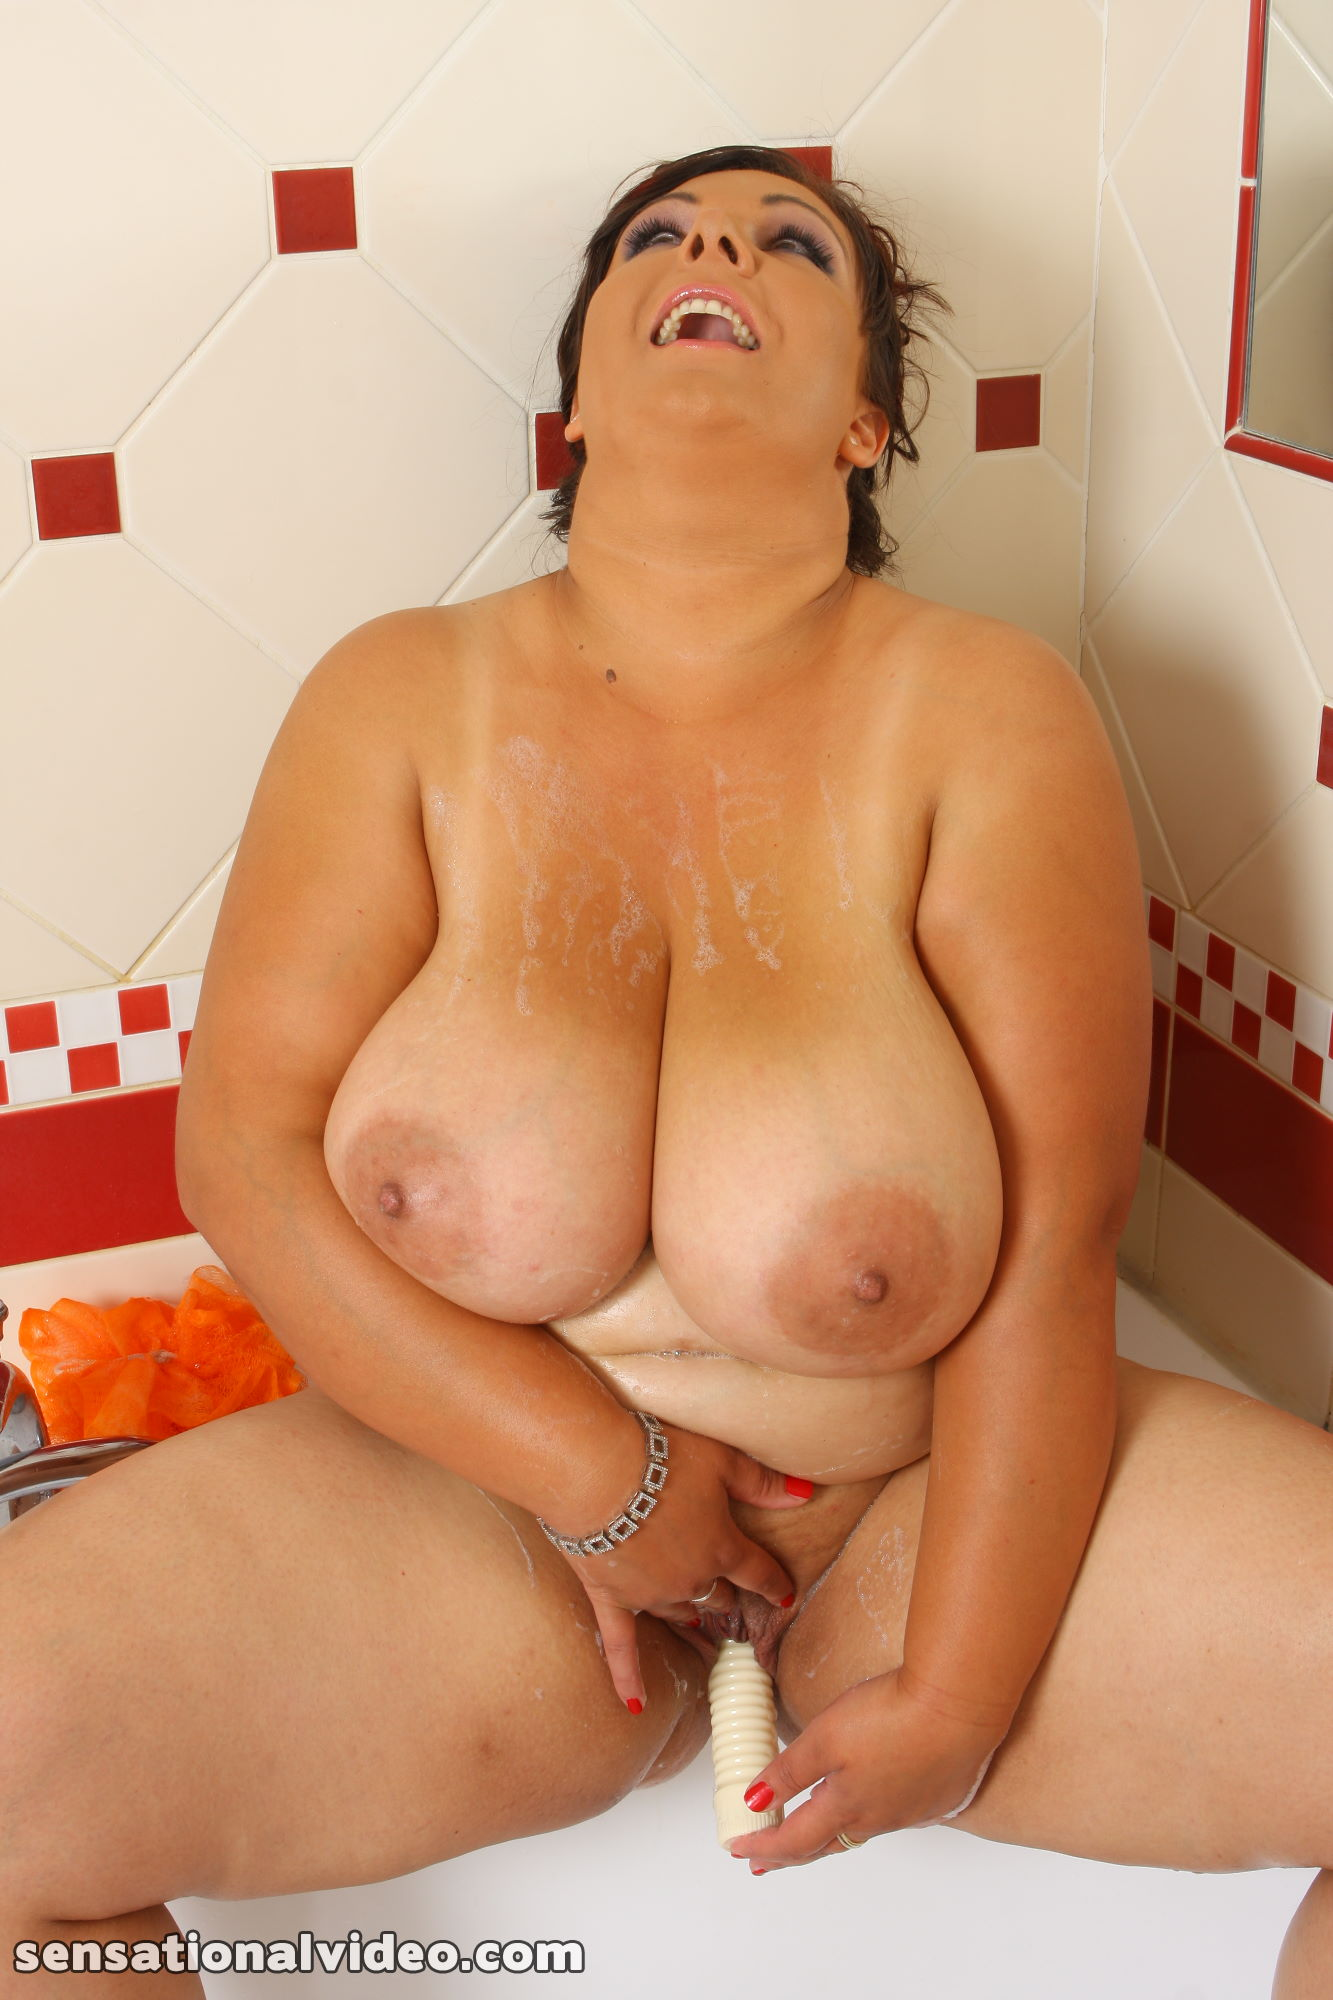 lesgalls spicytitties plumperpass gal667 pic 19